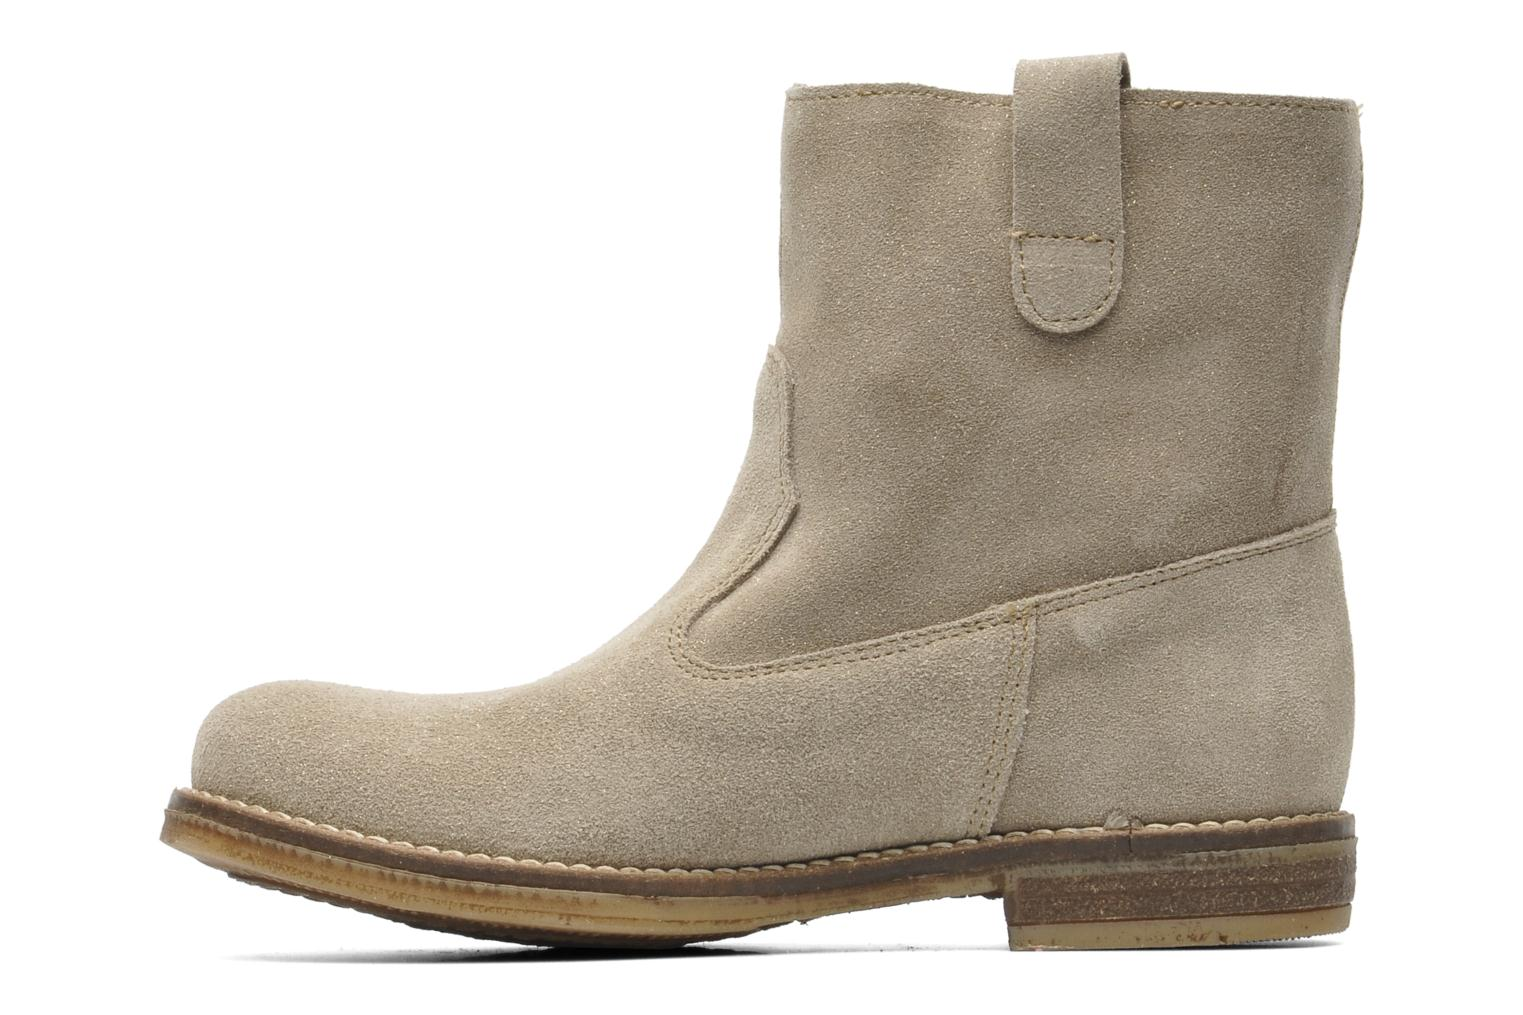 Cothurne Taupe